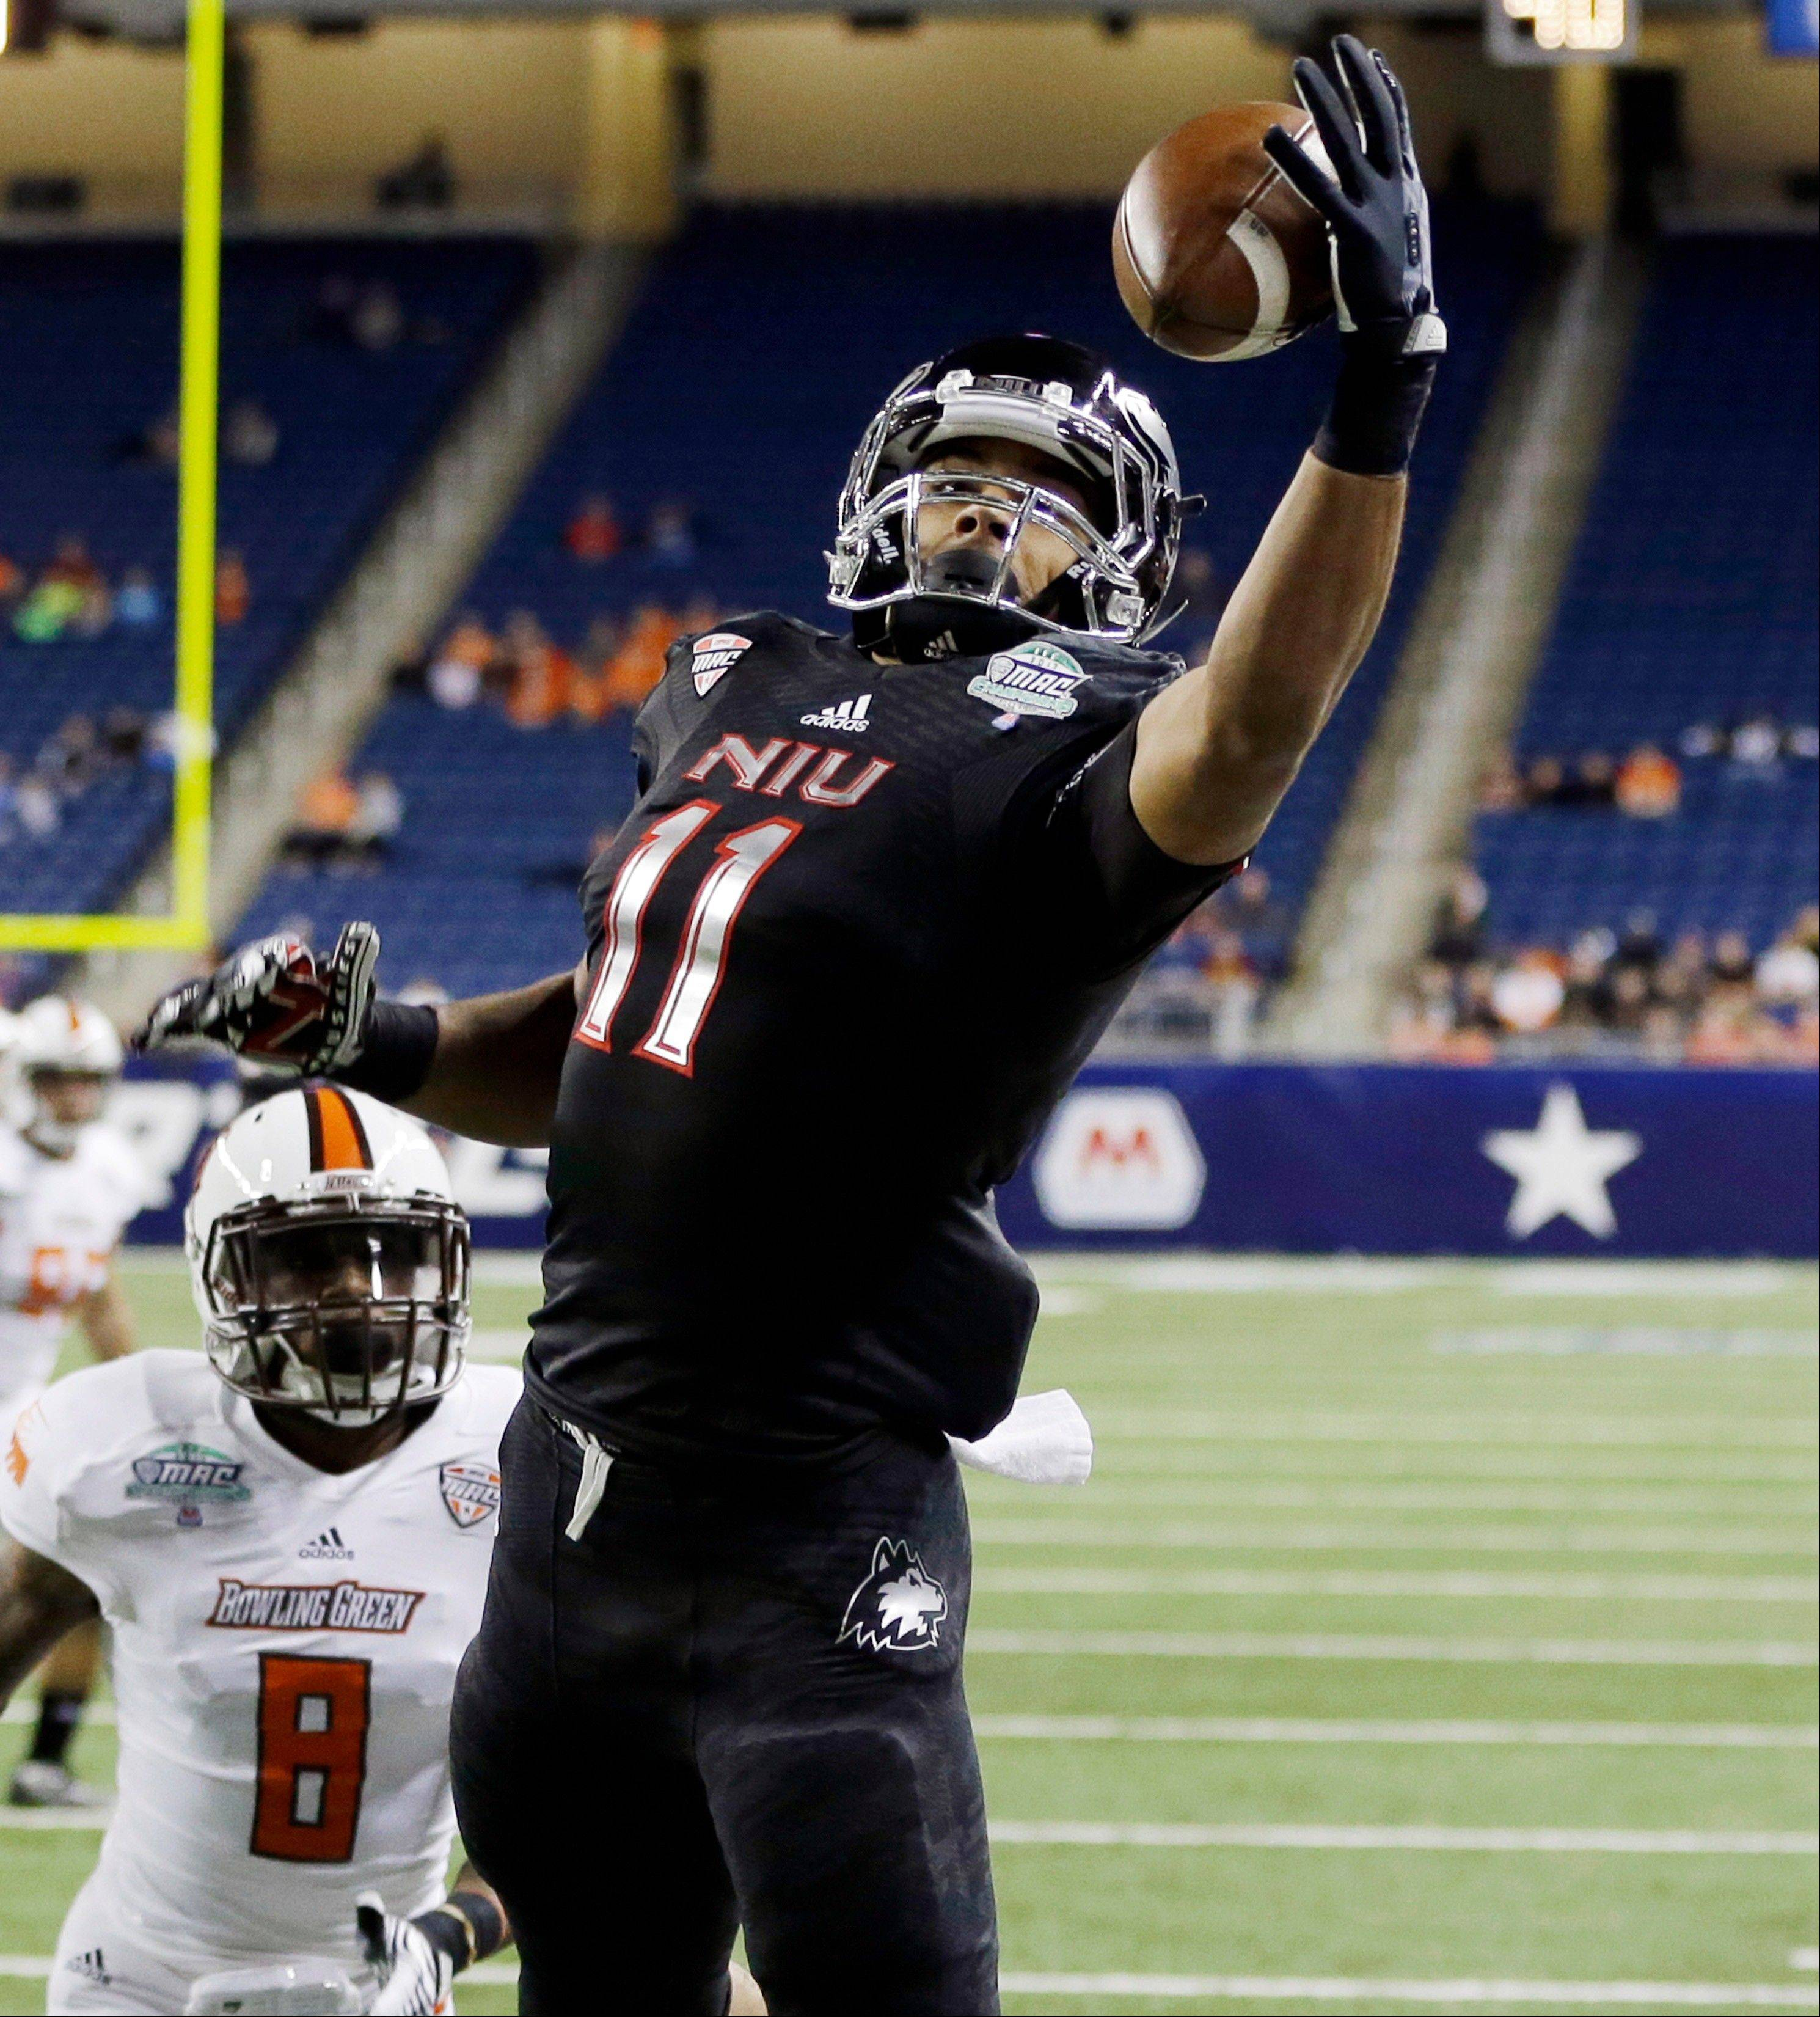 Northern Illinois wide receiver Juwan Brescacin (11) reaches for a 14-yard reception for a touchdown during the first quarter of the Mid-American Conference championship game in Detroit on Friday. NIU lost to Bowling Green 47-27.